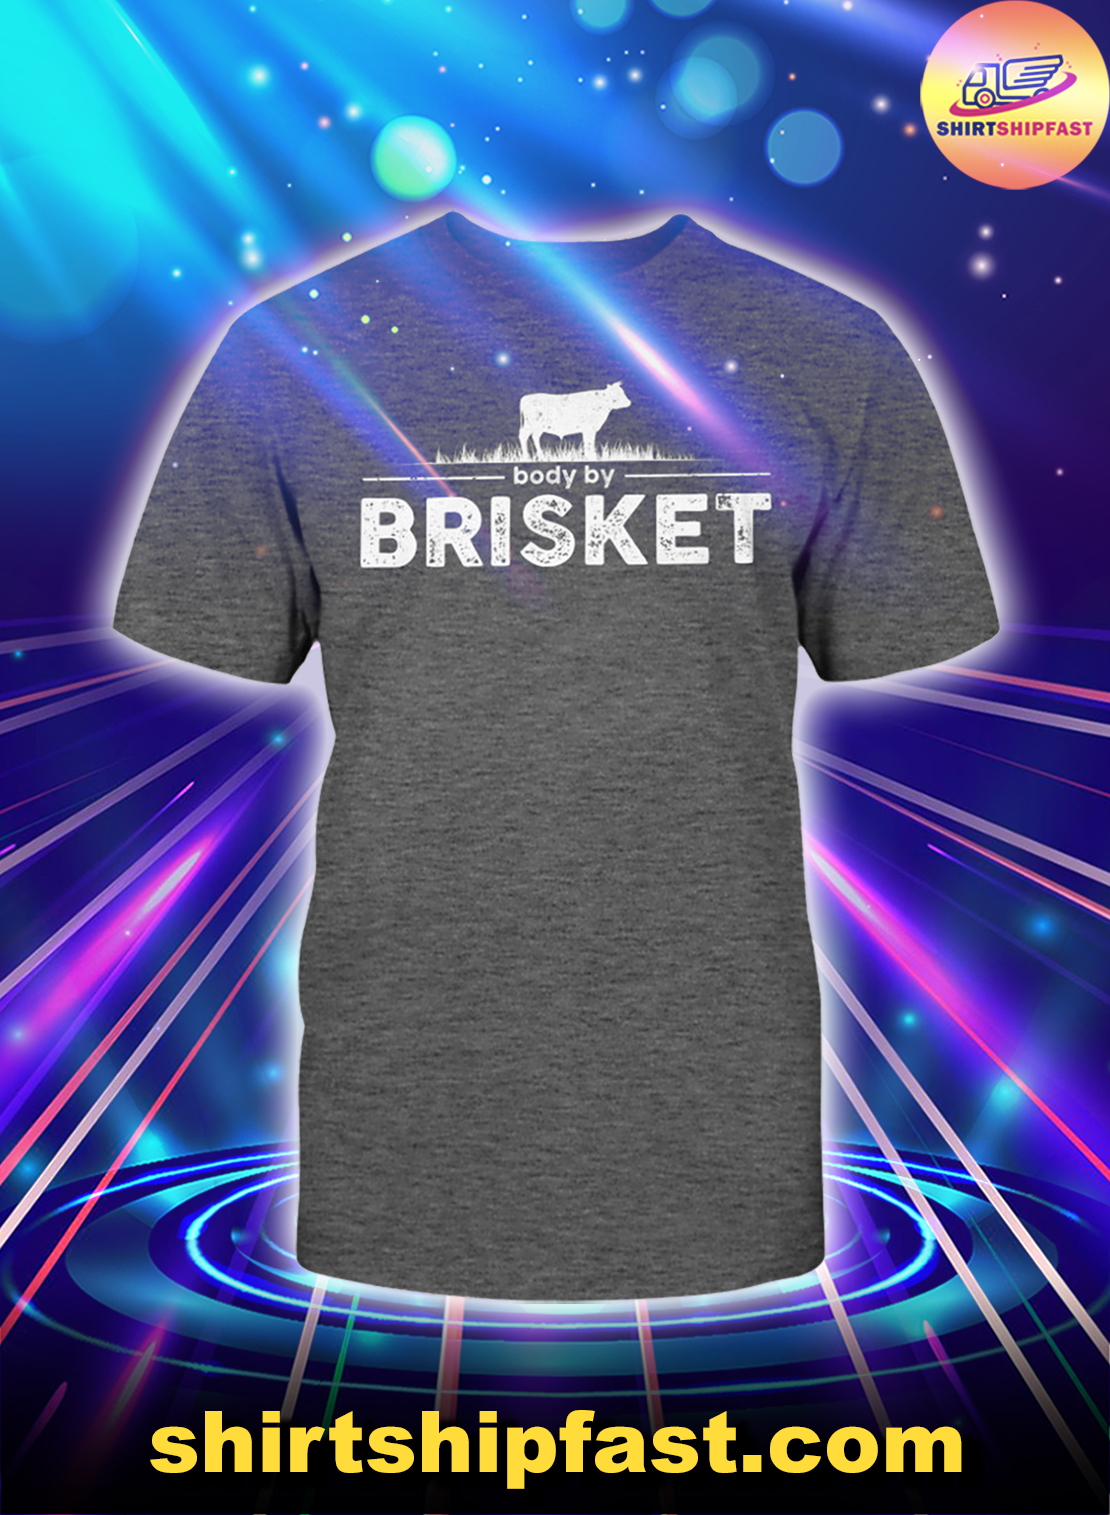 Cow Body by brisket shirt - Charcoal heather